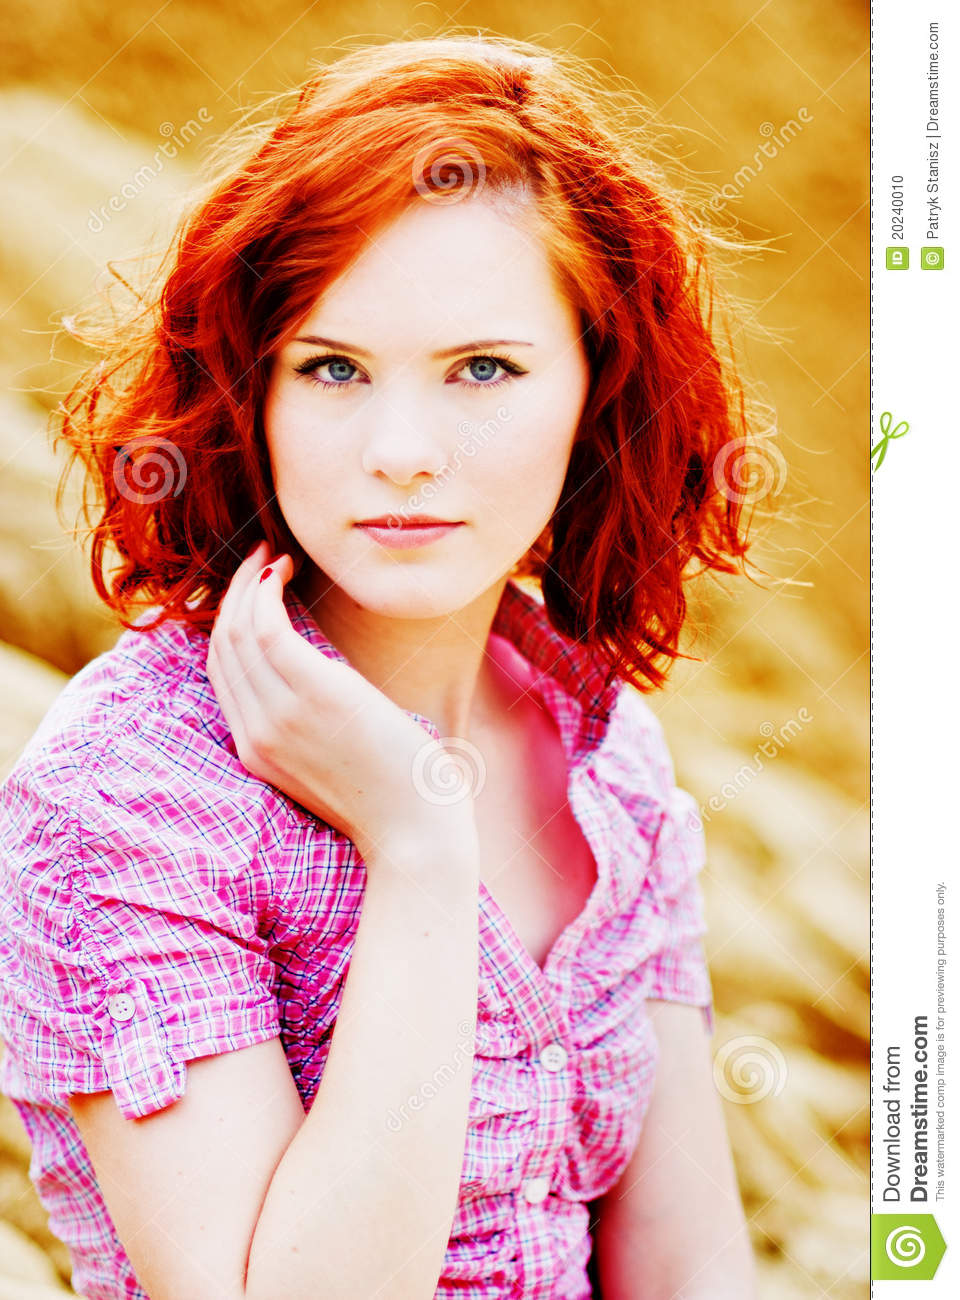 young girl with red hair stock photo image of forest beautiful young girl with red hair stock photo image